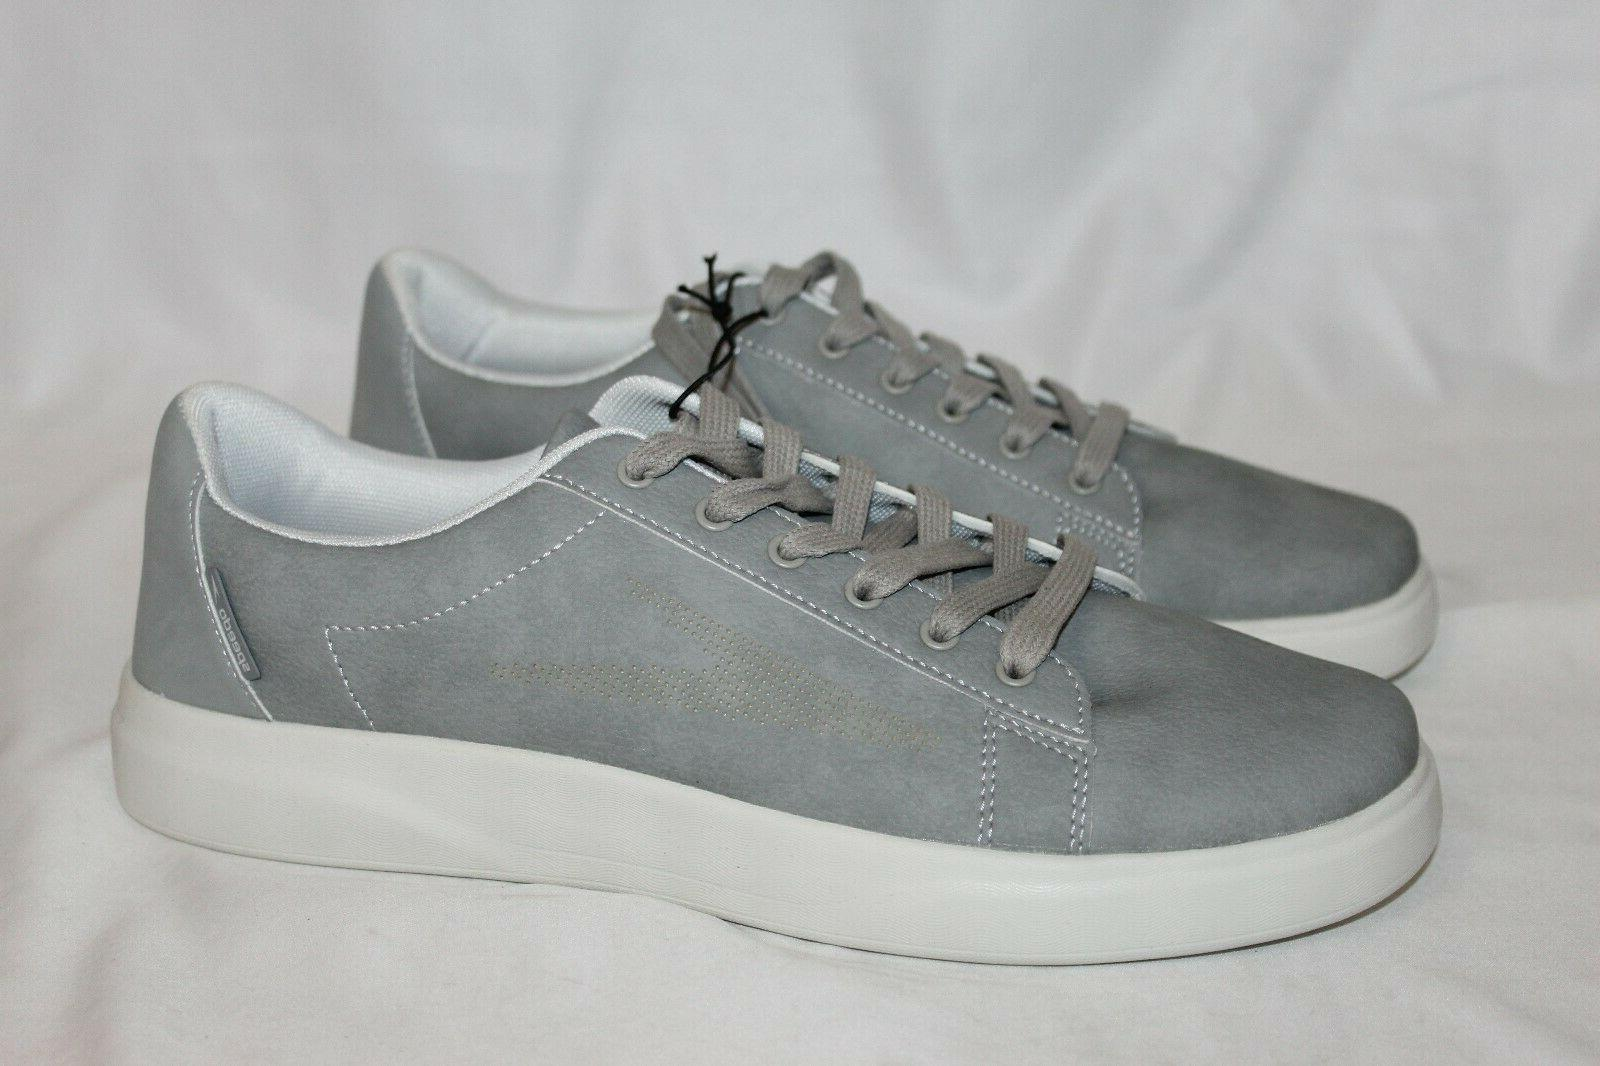 NEW Water Shoes Mens Lightweight Sneaker Gray